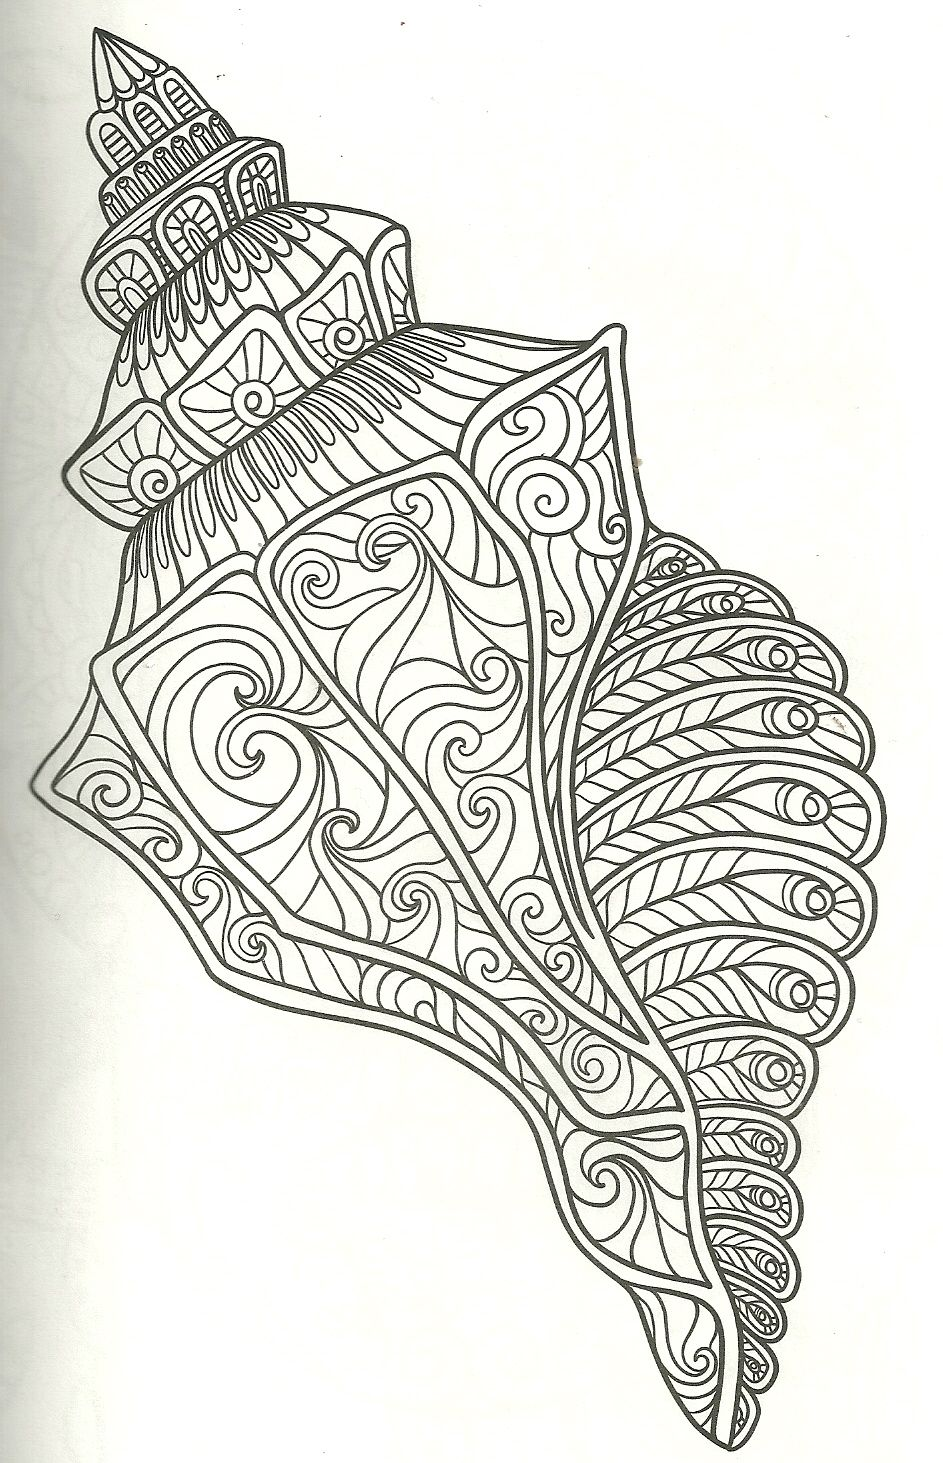 Printable coloring pages of seashells - Shell Coloring Page